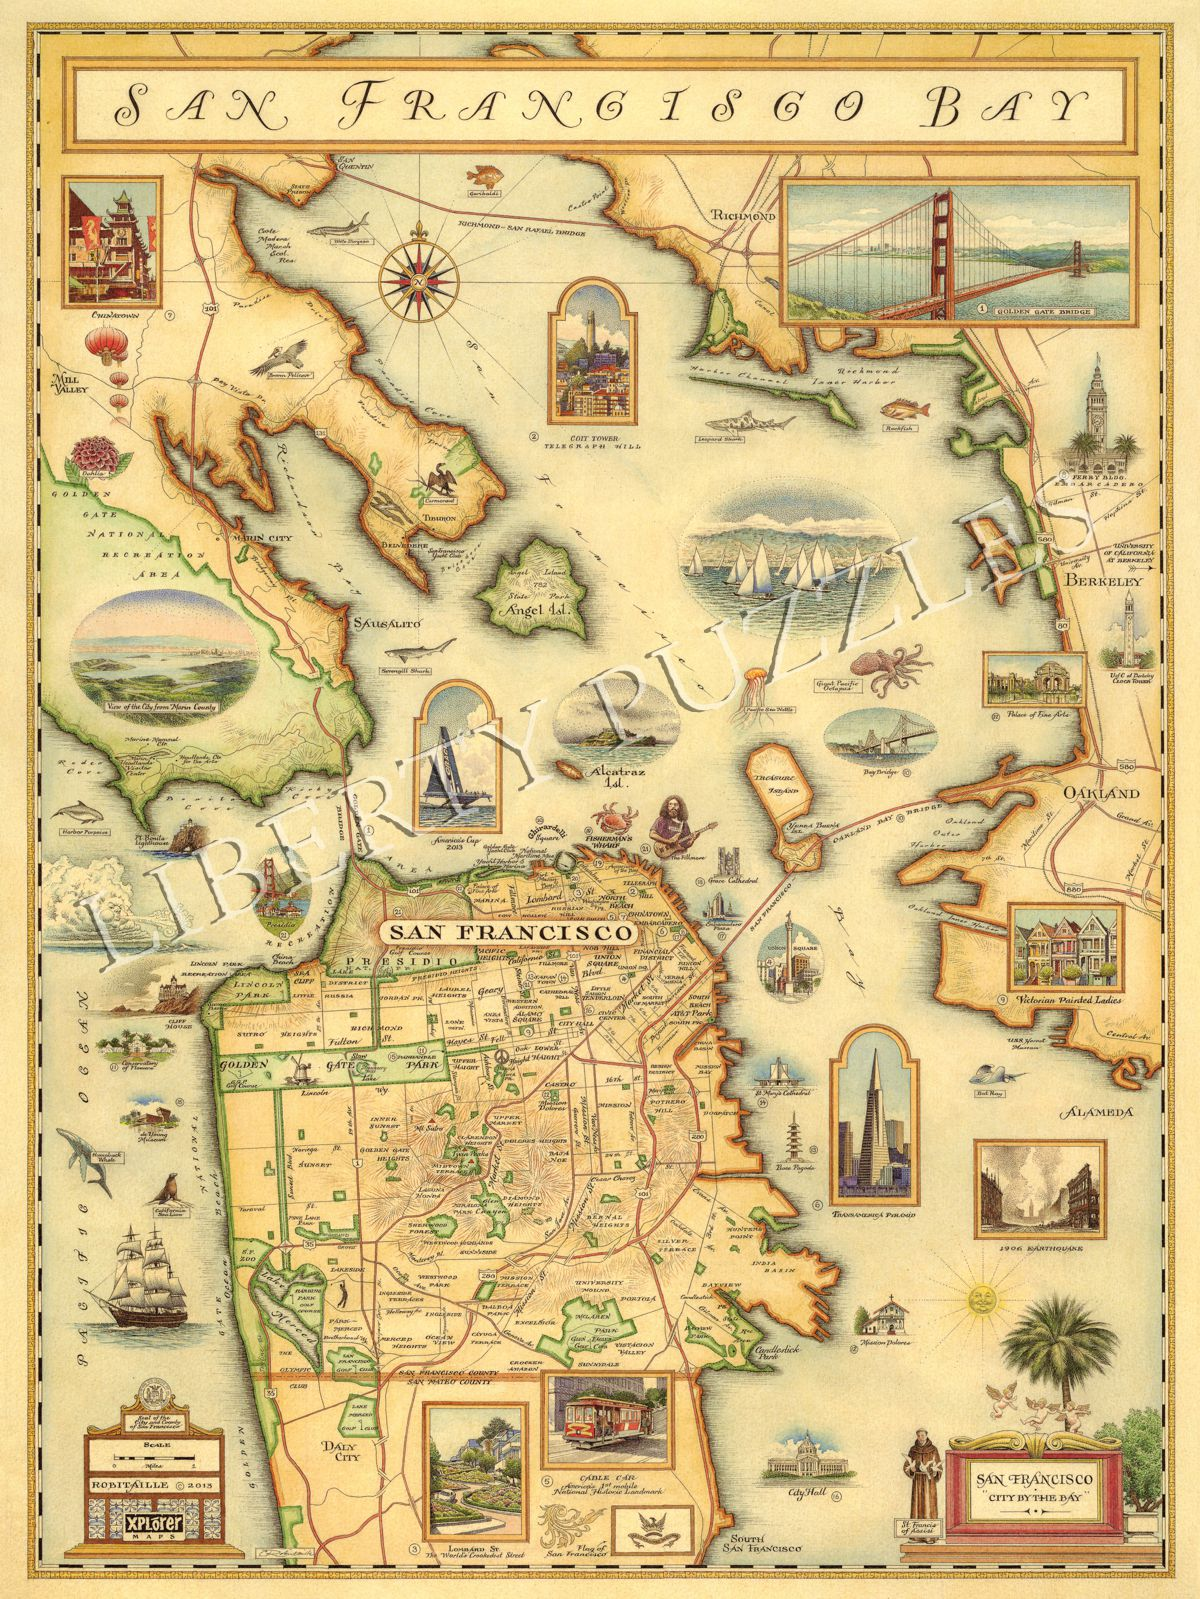 San Francisco Bay Map - Wooden Jigsaw Puzzle - Liberty ... on sierra mountains on map of usa, salt lake city on map of usa, chesapeake bay on map of usa, new madrid on map of usa, mt rushmore on map of usa, corn belt on map of usa, arkansas river on map of usa, sierra nevada on map of usa, mt st helens on map of usa, pikes peak on map of usa, south dakota on map of usa, new mexico on map of usa, new hampshire on map of usa, ferguson on map of usa, montana on map of usa, snake river on map of usa, jackson on map of usa, dodge city on map of usa, mojave desert on map of usa, black hills on map of usa,